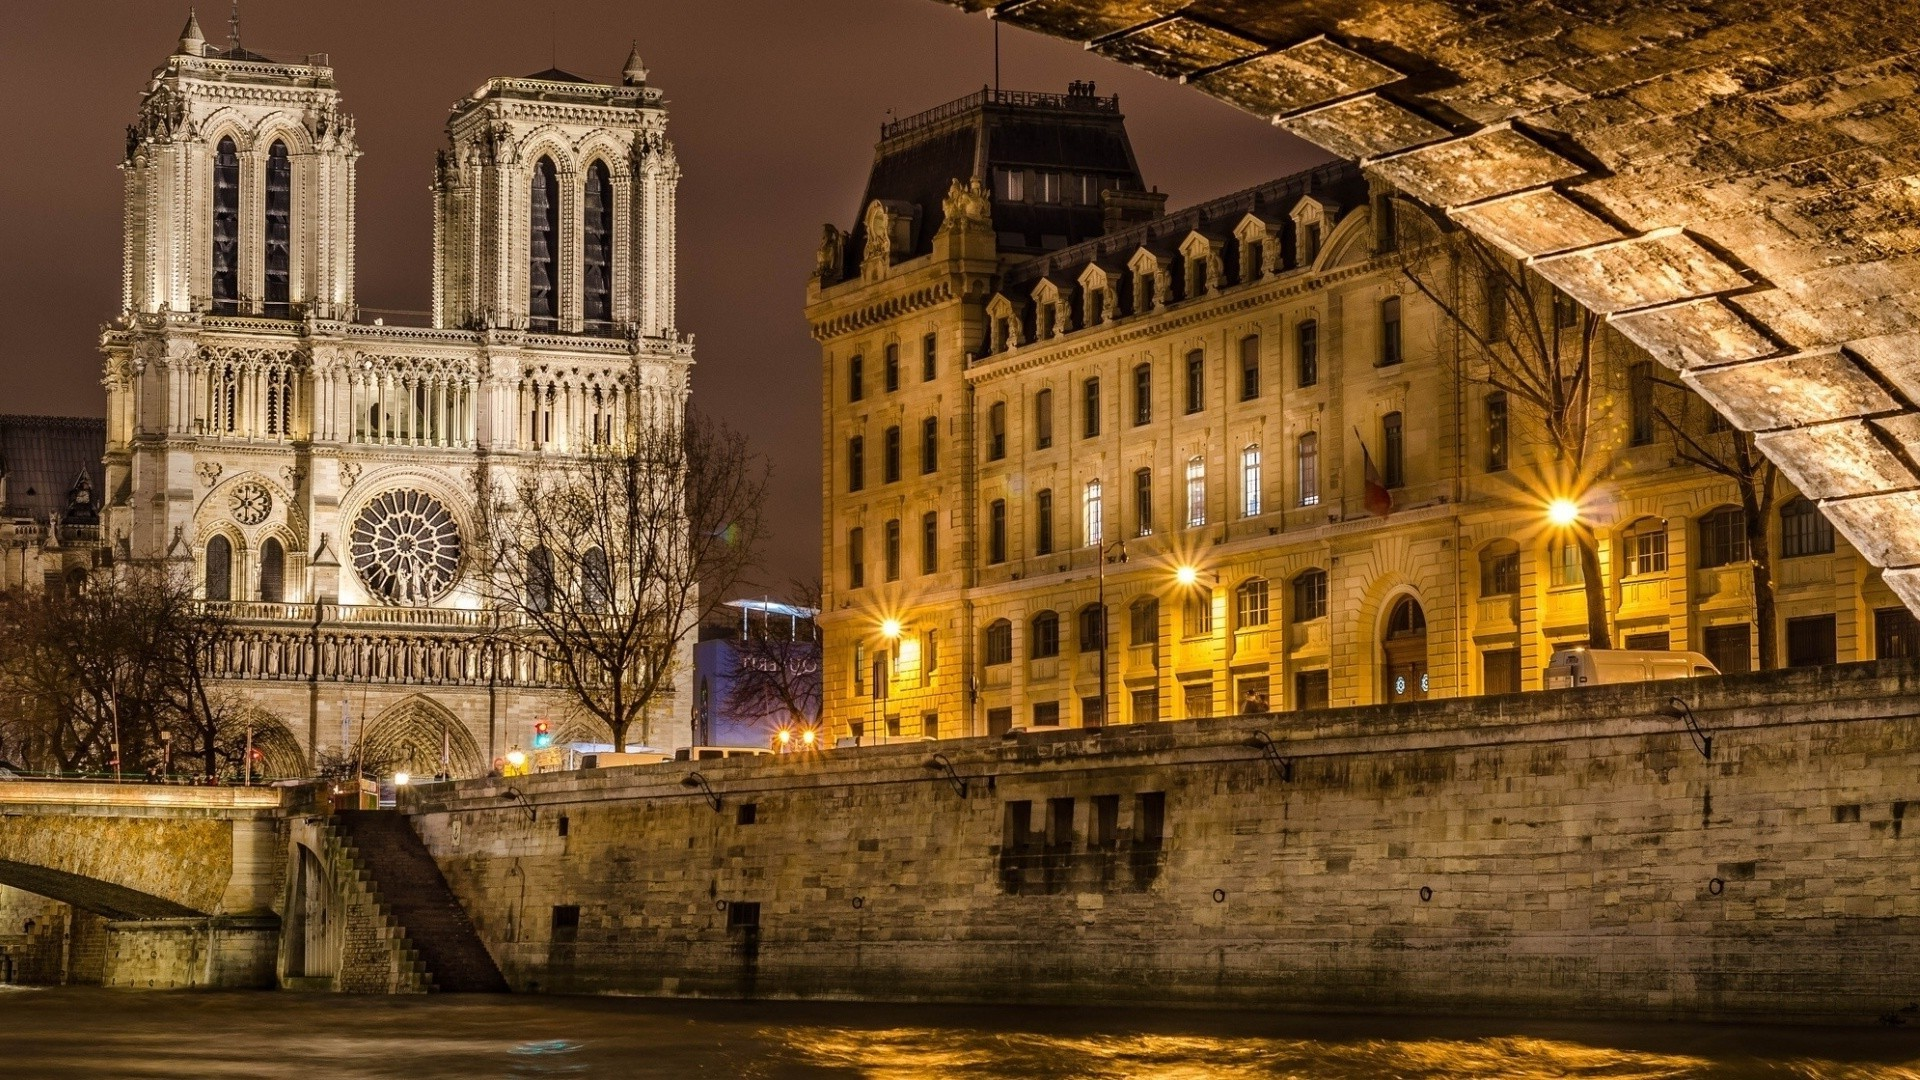 Notre Dame Cathedral Wallpaper 183 ① Wallpapertag